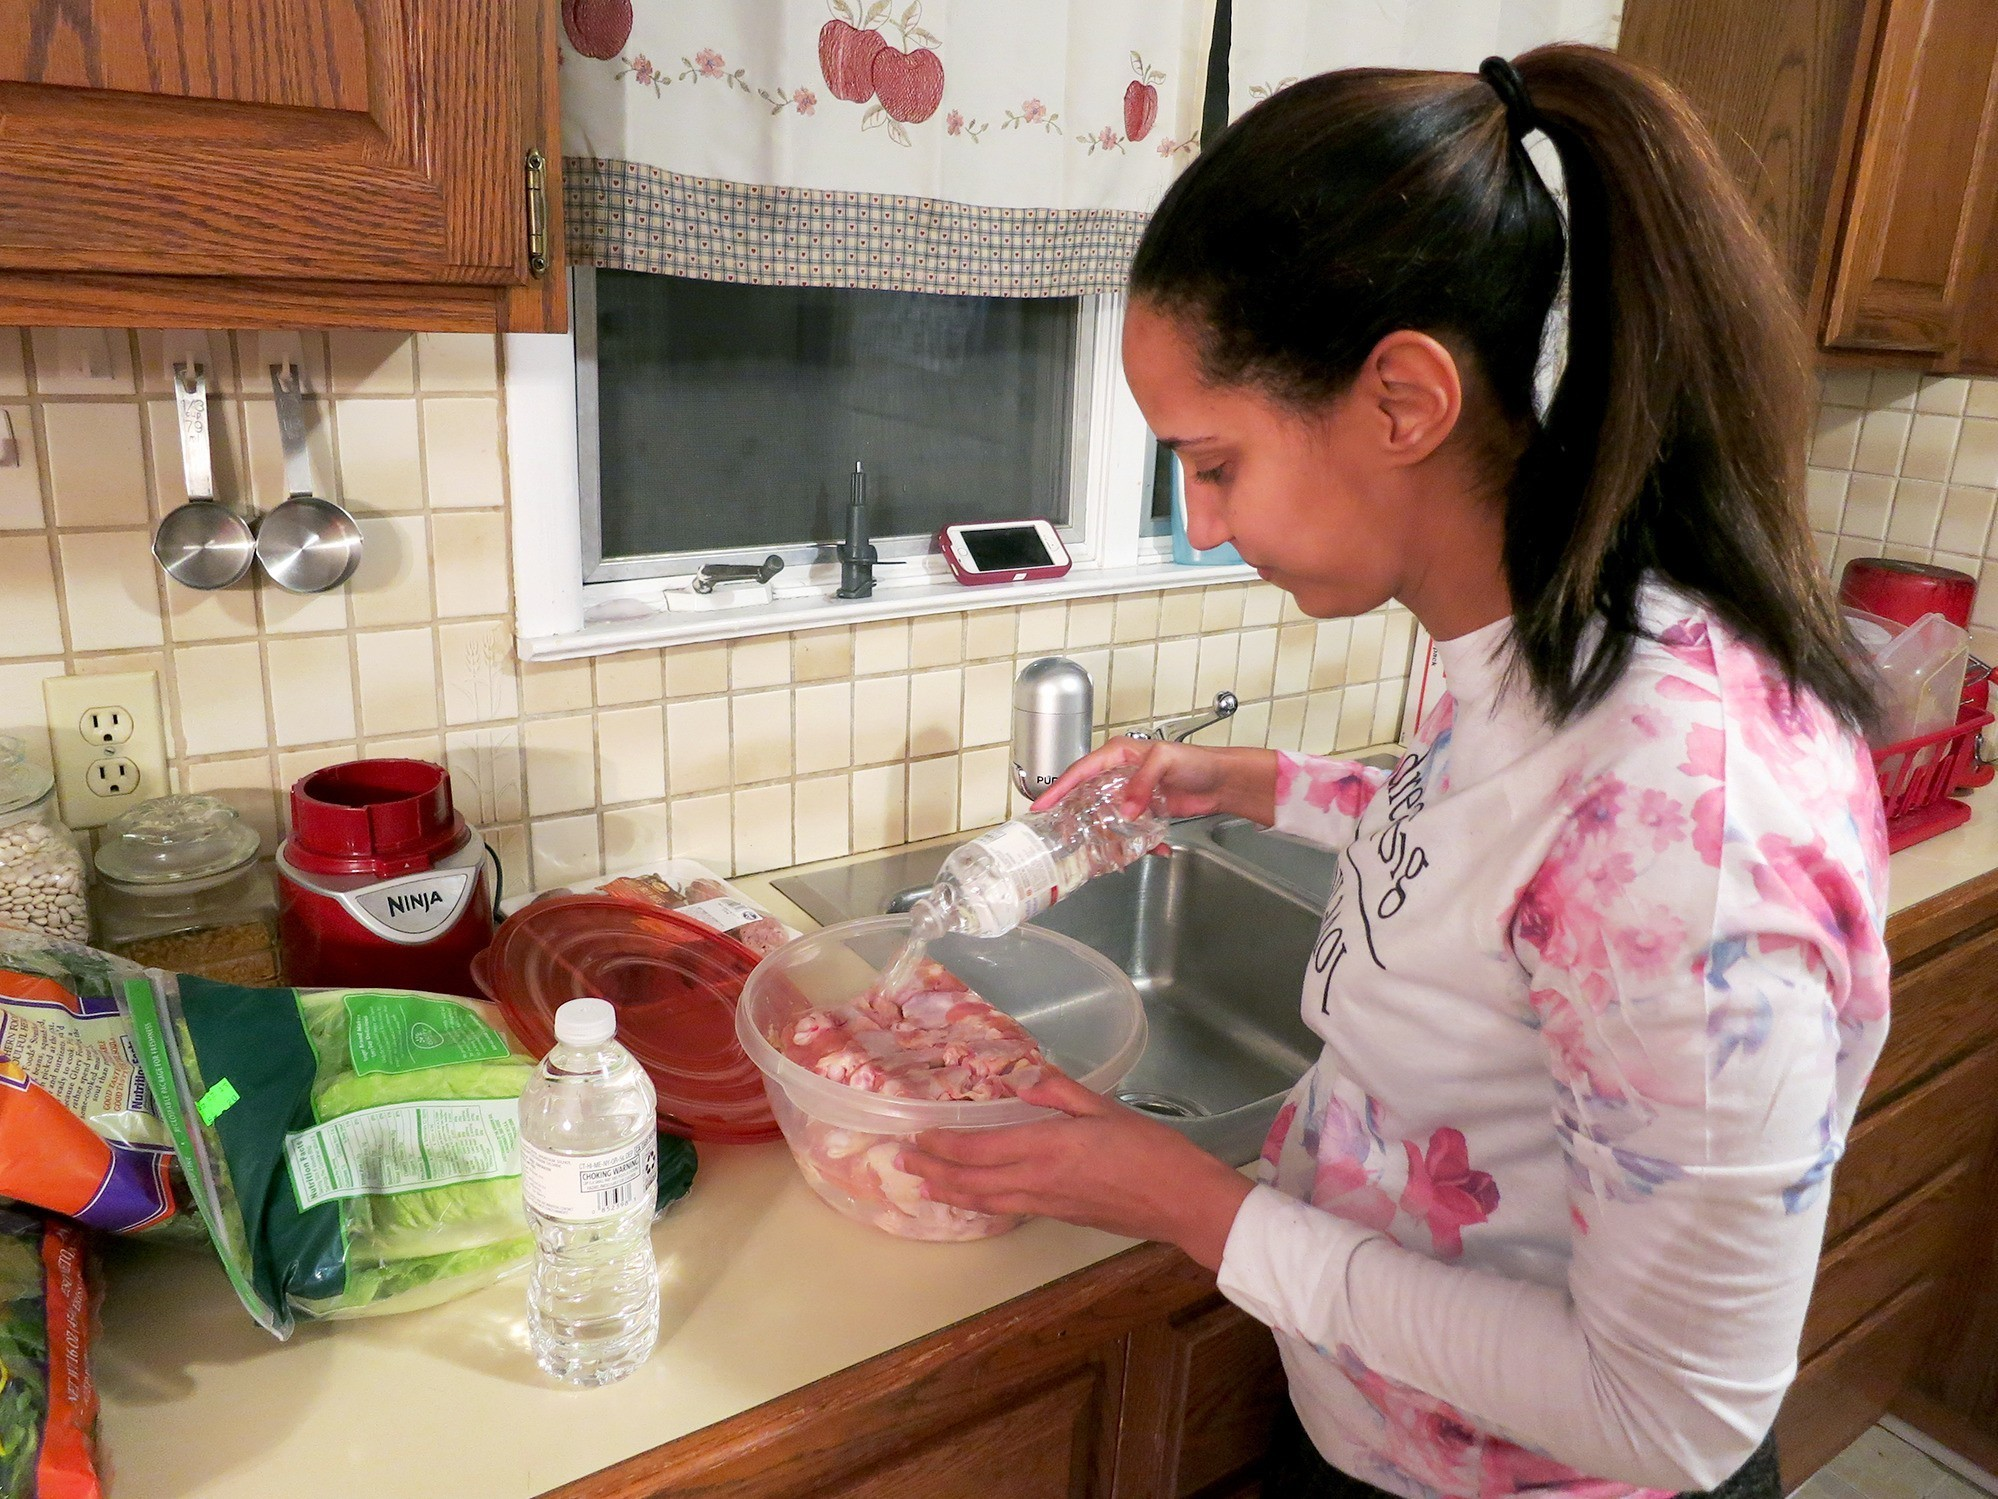 Doctors In Flint, Mich., Push A Healthy Diet To Fight Lead Exposure